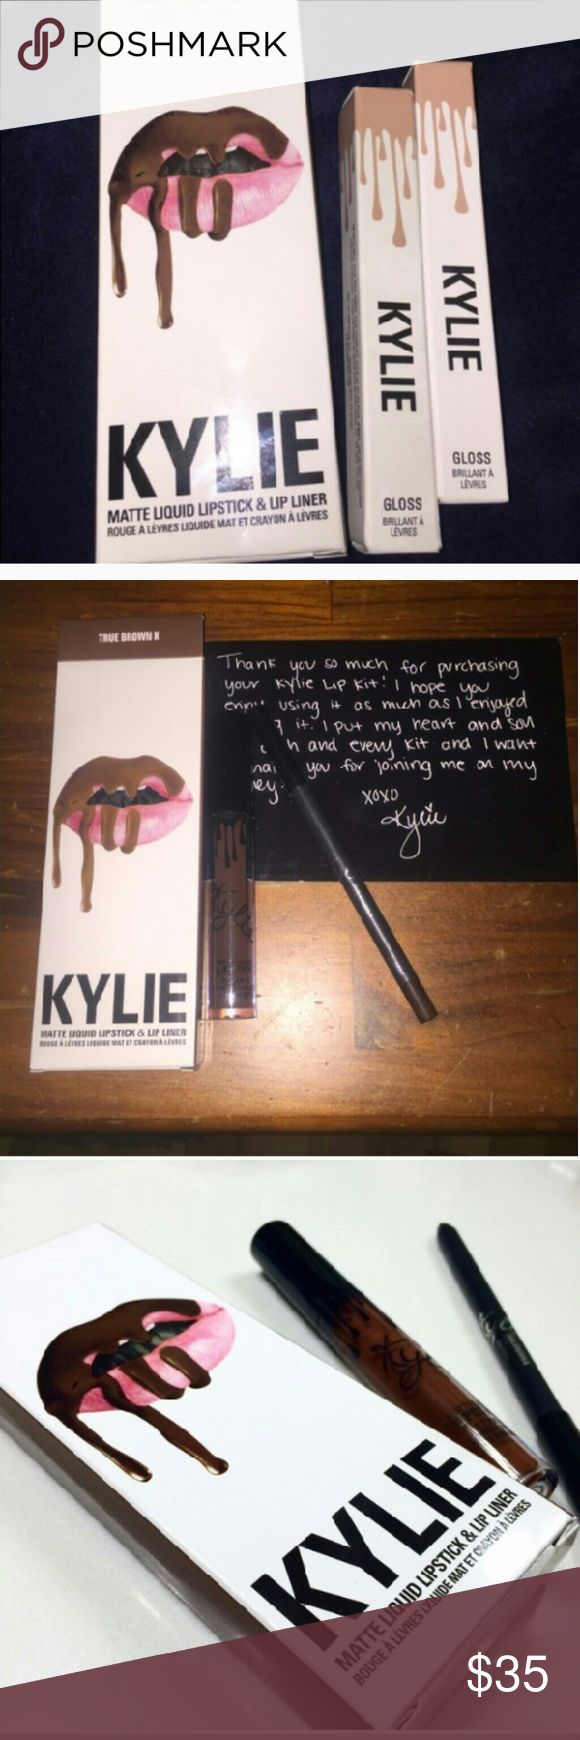 """NWTKylie Jenner """"TRUE BROWN K with special note NWT Kylie Jenner TRUE BROWN K with special note, includes :Kylie Jenner matte liquid lipstick and lip liner .  Also includes :Kylie Jenner TRUE BROWN K box from original store. ...Liquid lipstick color is a deep brown. Same as liner.  100?authentication , Brand new! Never used. Great for a gift or to get that """"Kylie Jenner pout"""",! Selling this beautiful set for a great price! Lowering the price temporarily. Get it now! Kylie Cosmetics Makeup…"""